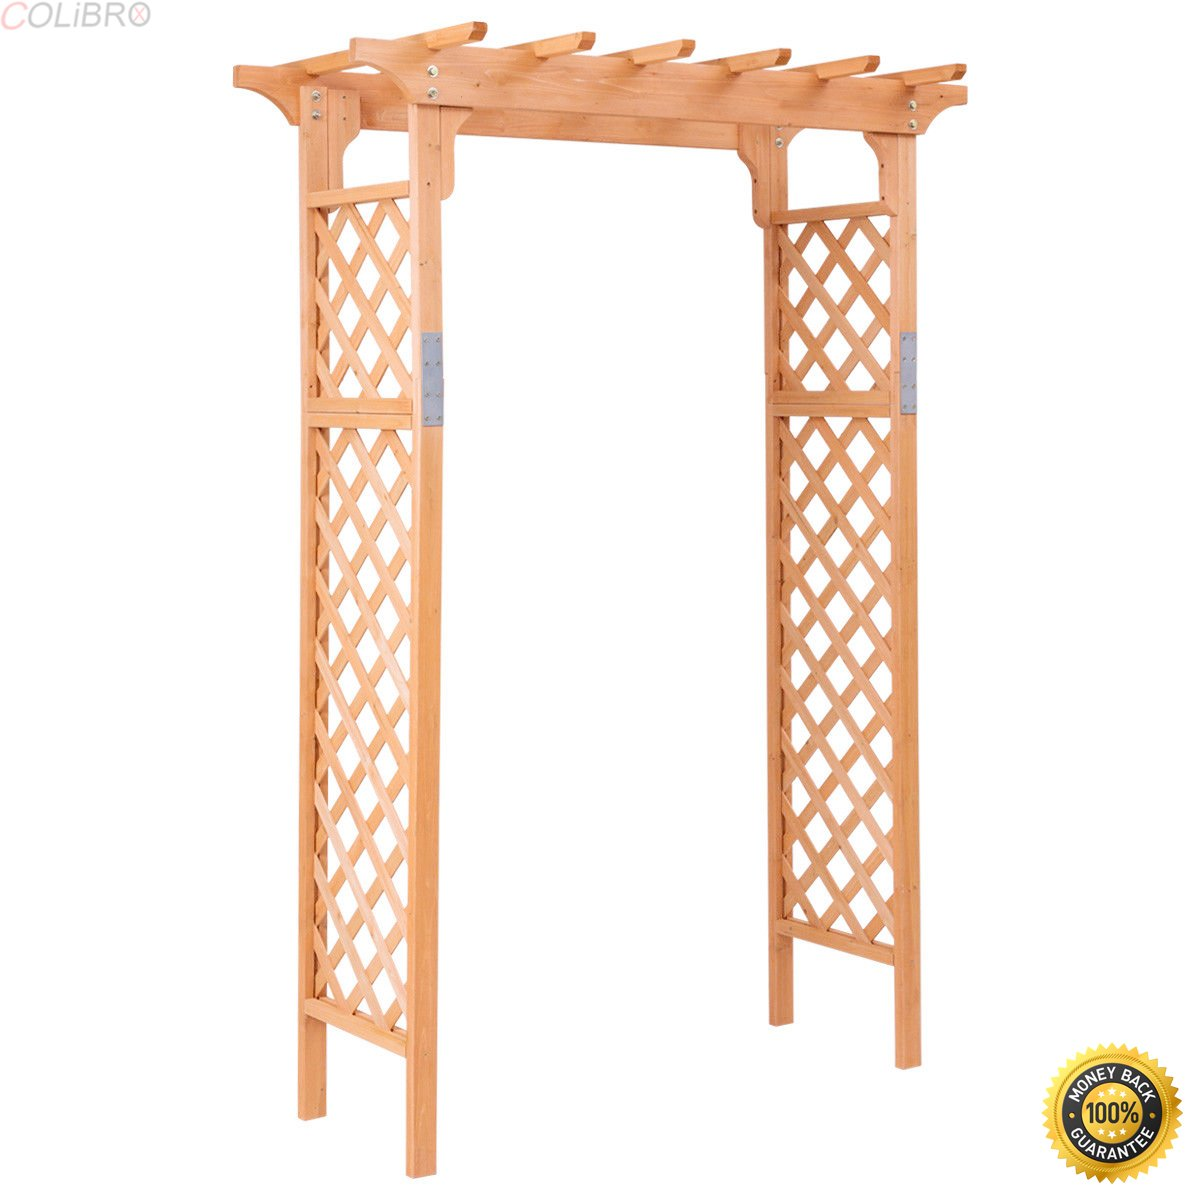 COLIBROX--Arbor Over 7FT High Wooden Garden Arch Trellis Pergola Outdoor Patio Plant,Extra-Tall Arch Provides An Attractive Archway,Extra-Tall Arch For Climbing Plants,New Garden Arch.